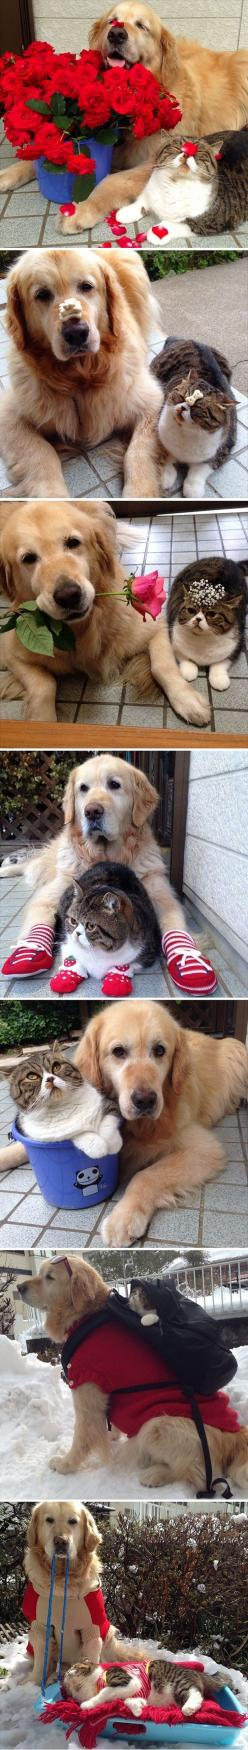 This is a patient duo.: Cuteness Overload, Best Friends, Dogs And Cats, Bestfriends, Pet, Bffs, Cats And Dogs, Golden Retriever, Animal